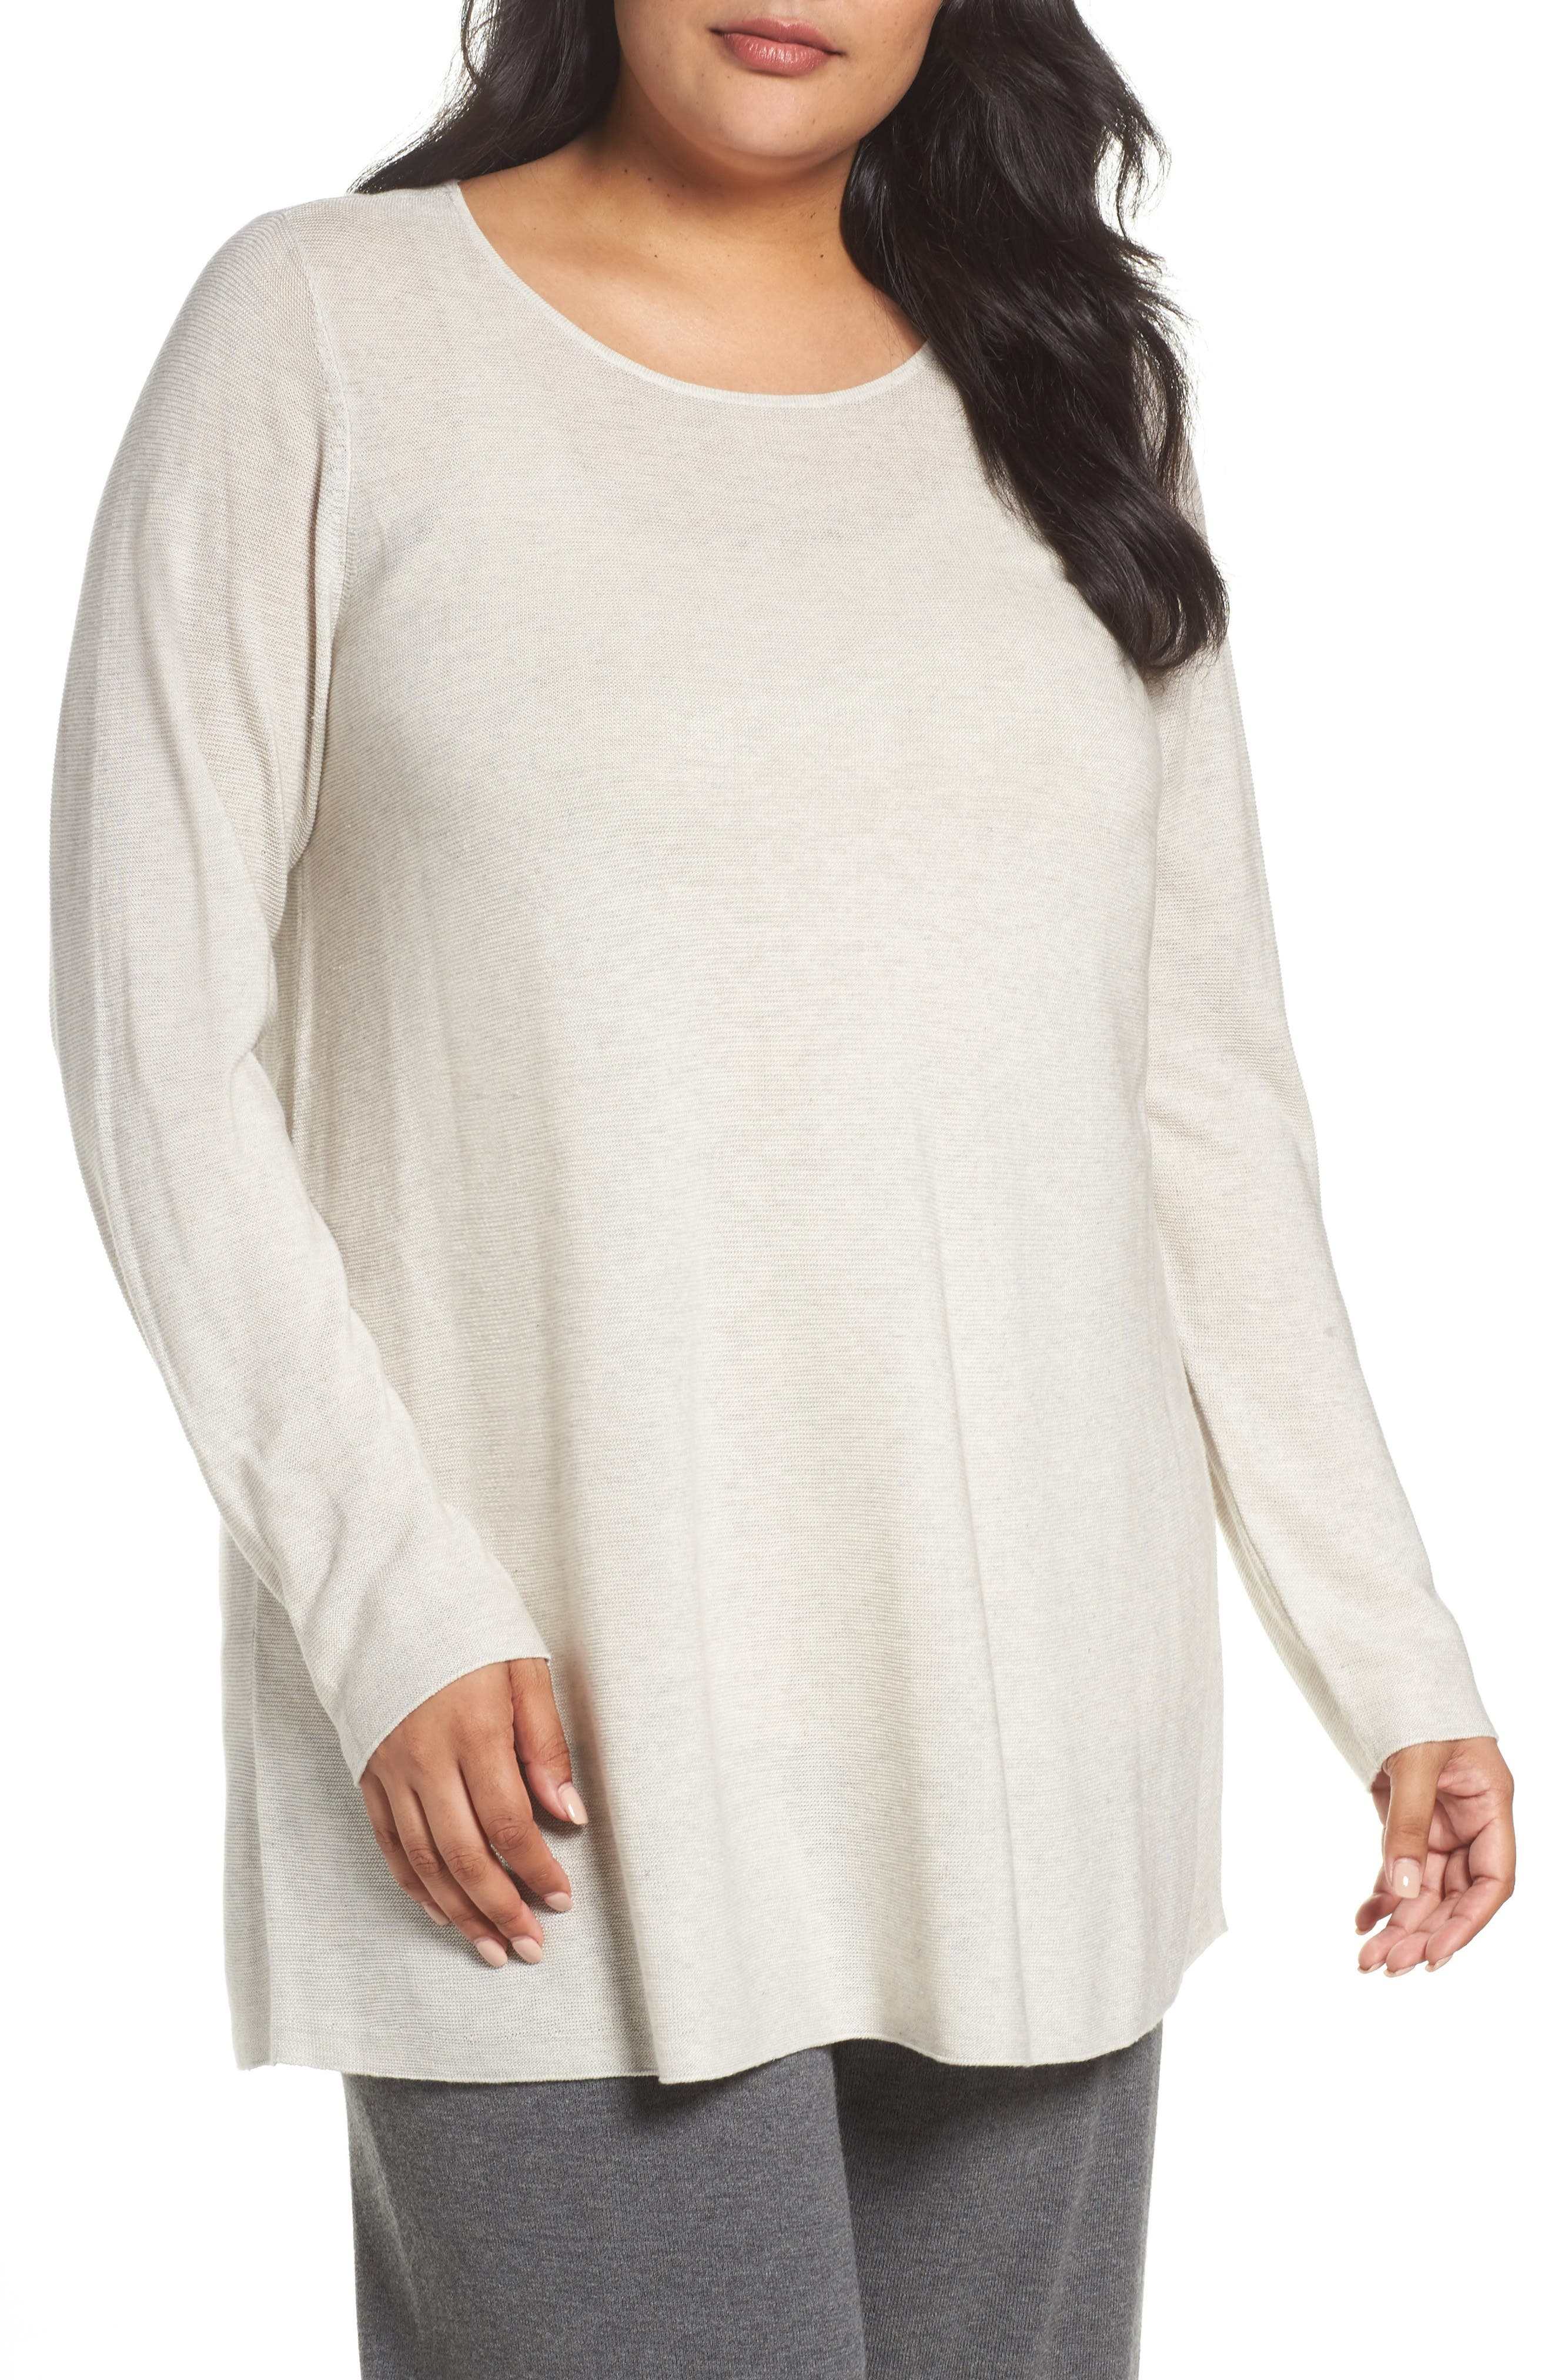 Alternate Image 1 Selected - Eileen Fisher Jewel Neck Tunic Sweater (Plus Size)